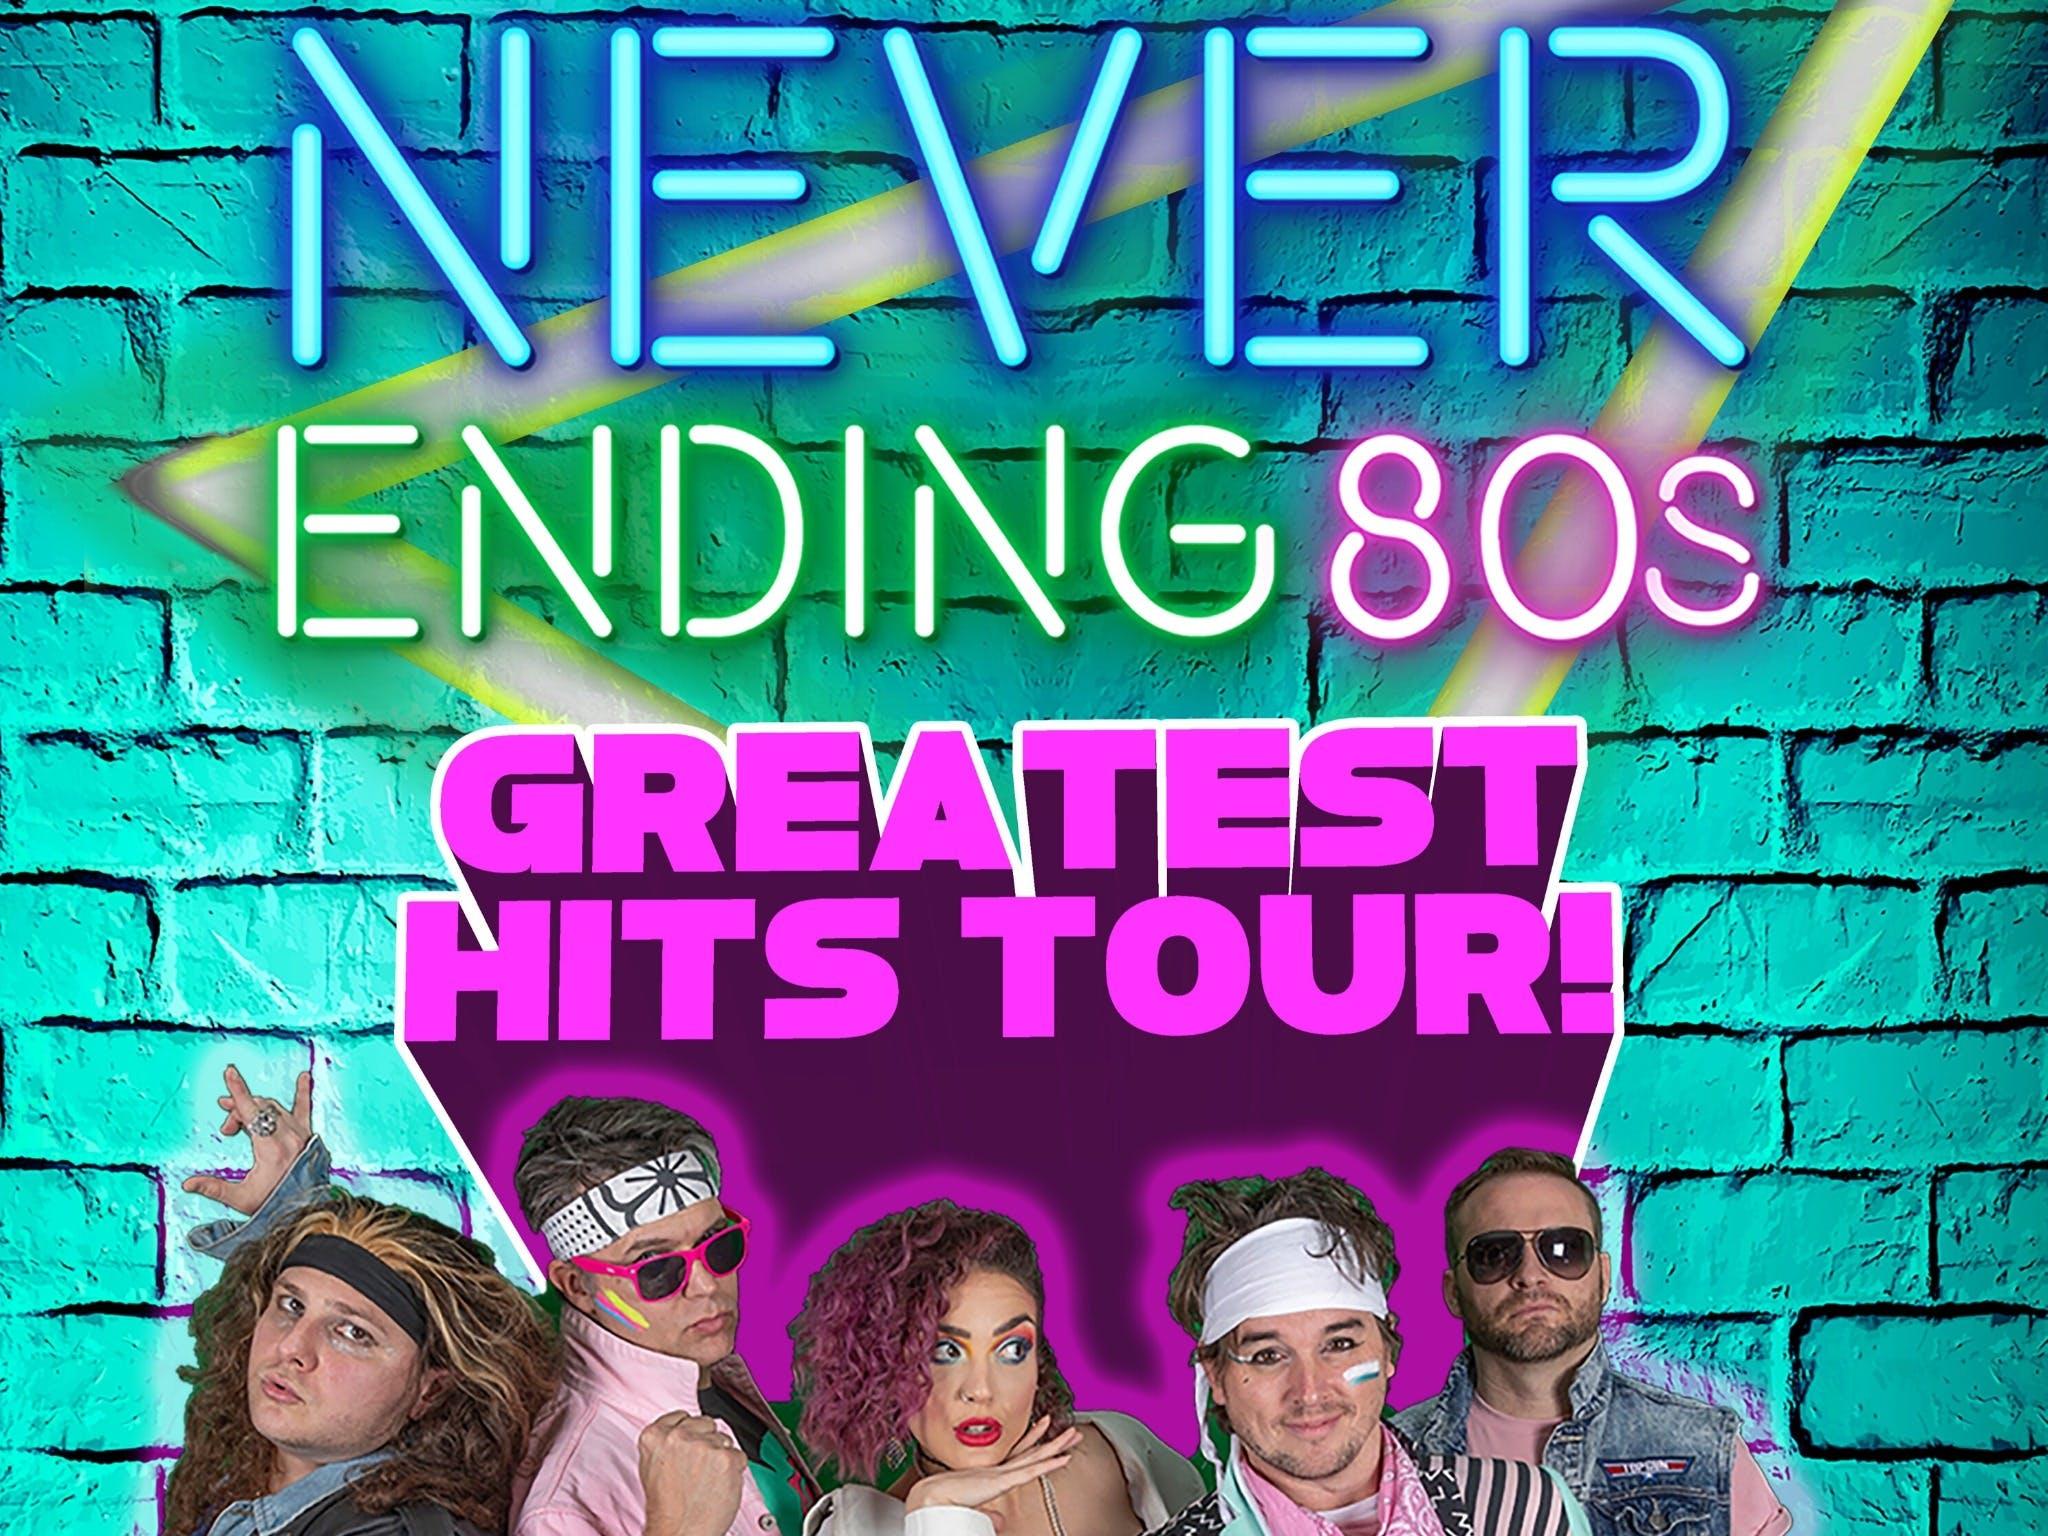 Never Ending 80s - The Greatest Hits Tour - Accommodation in Brisbane